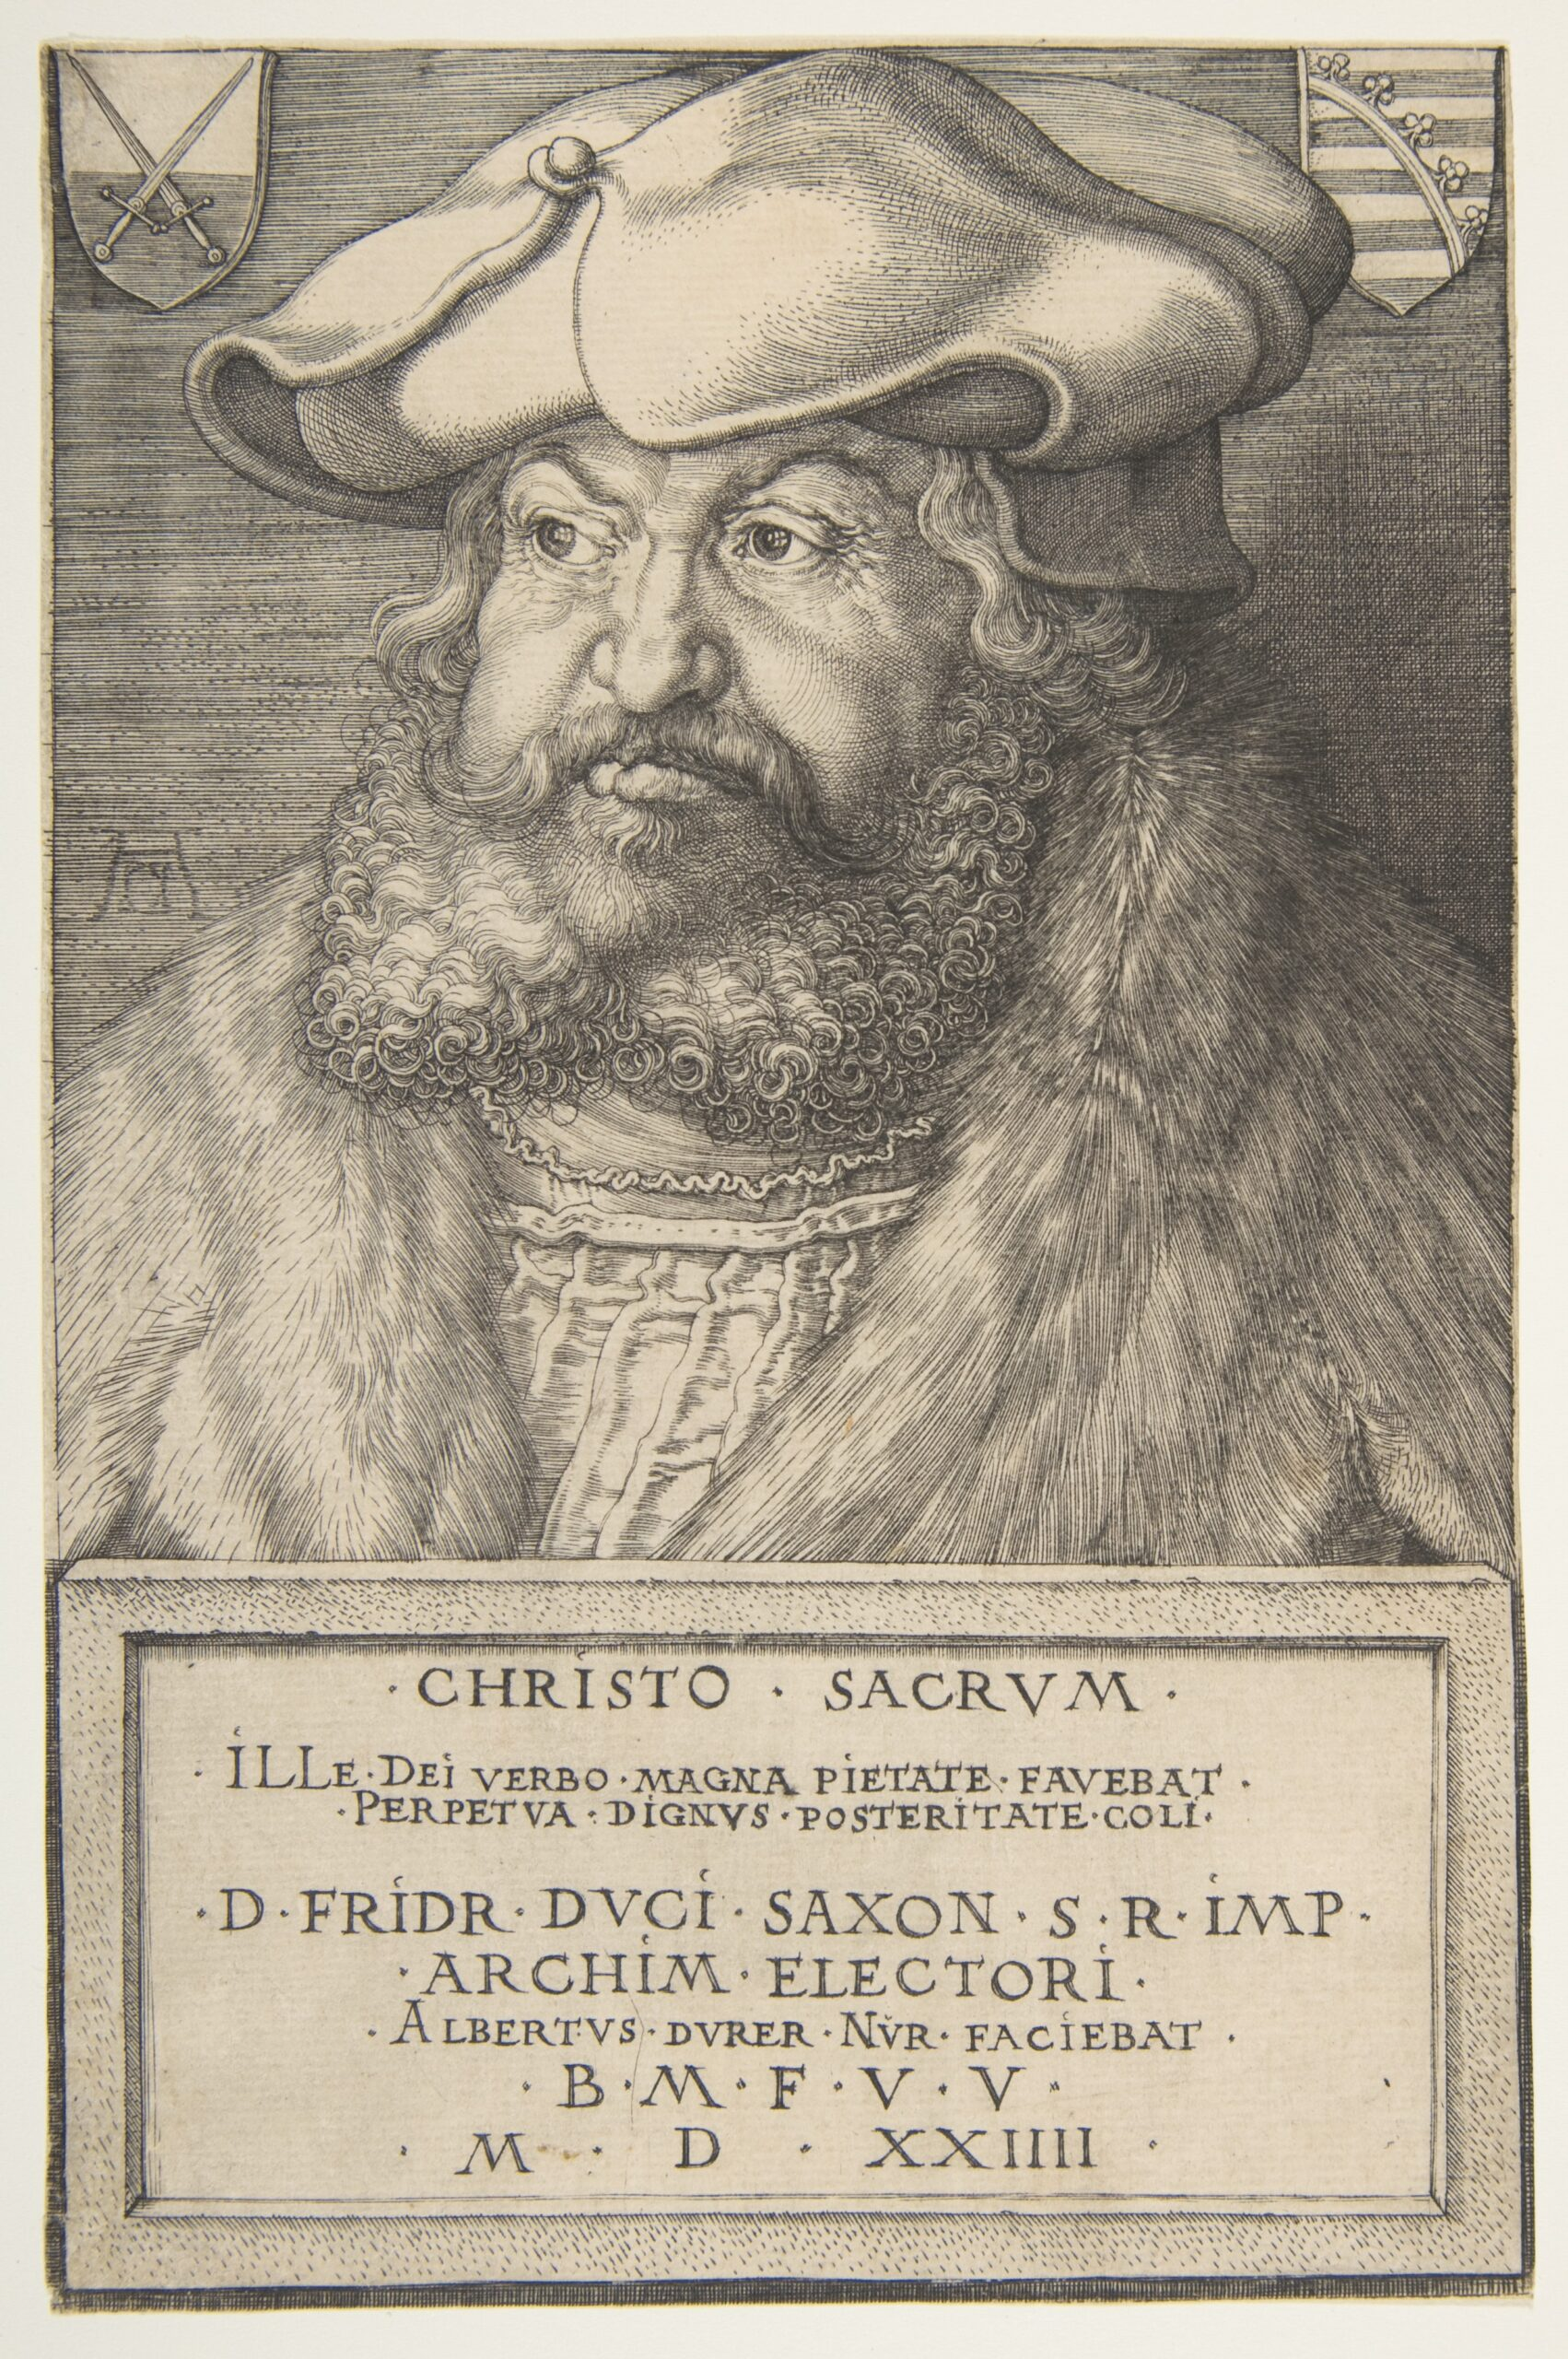 Durer 1524 Frederick the Wise, Elector of Saxony